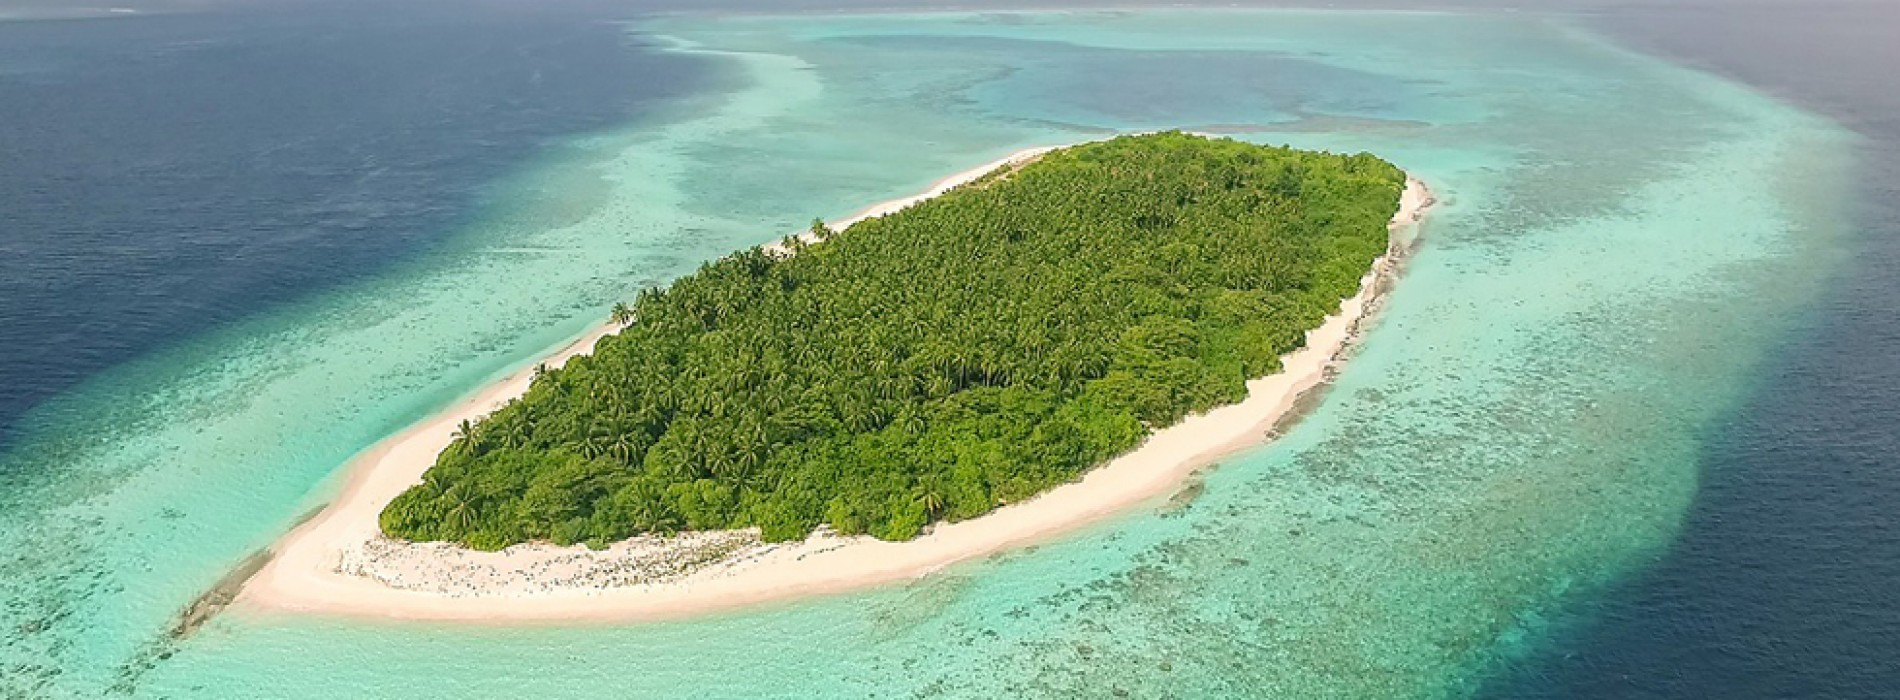 AVANI to debut in the Maldives with development of AVANI Fares Resort